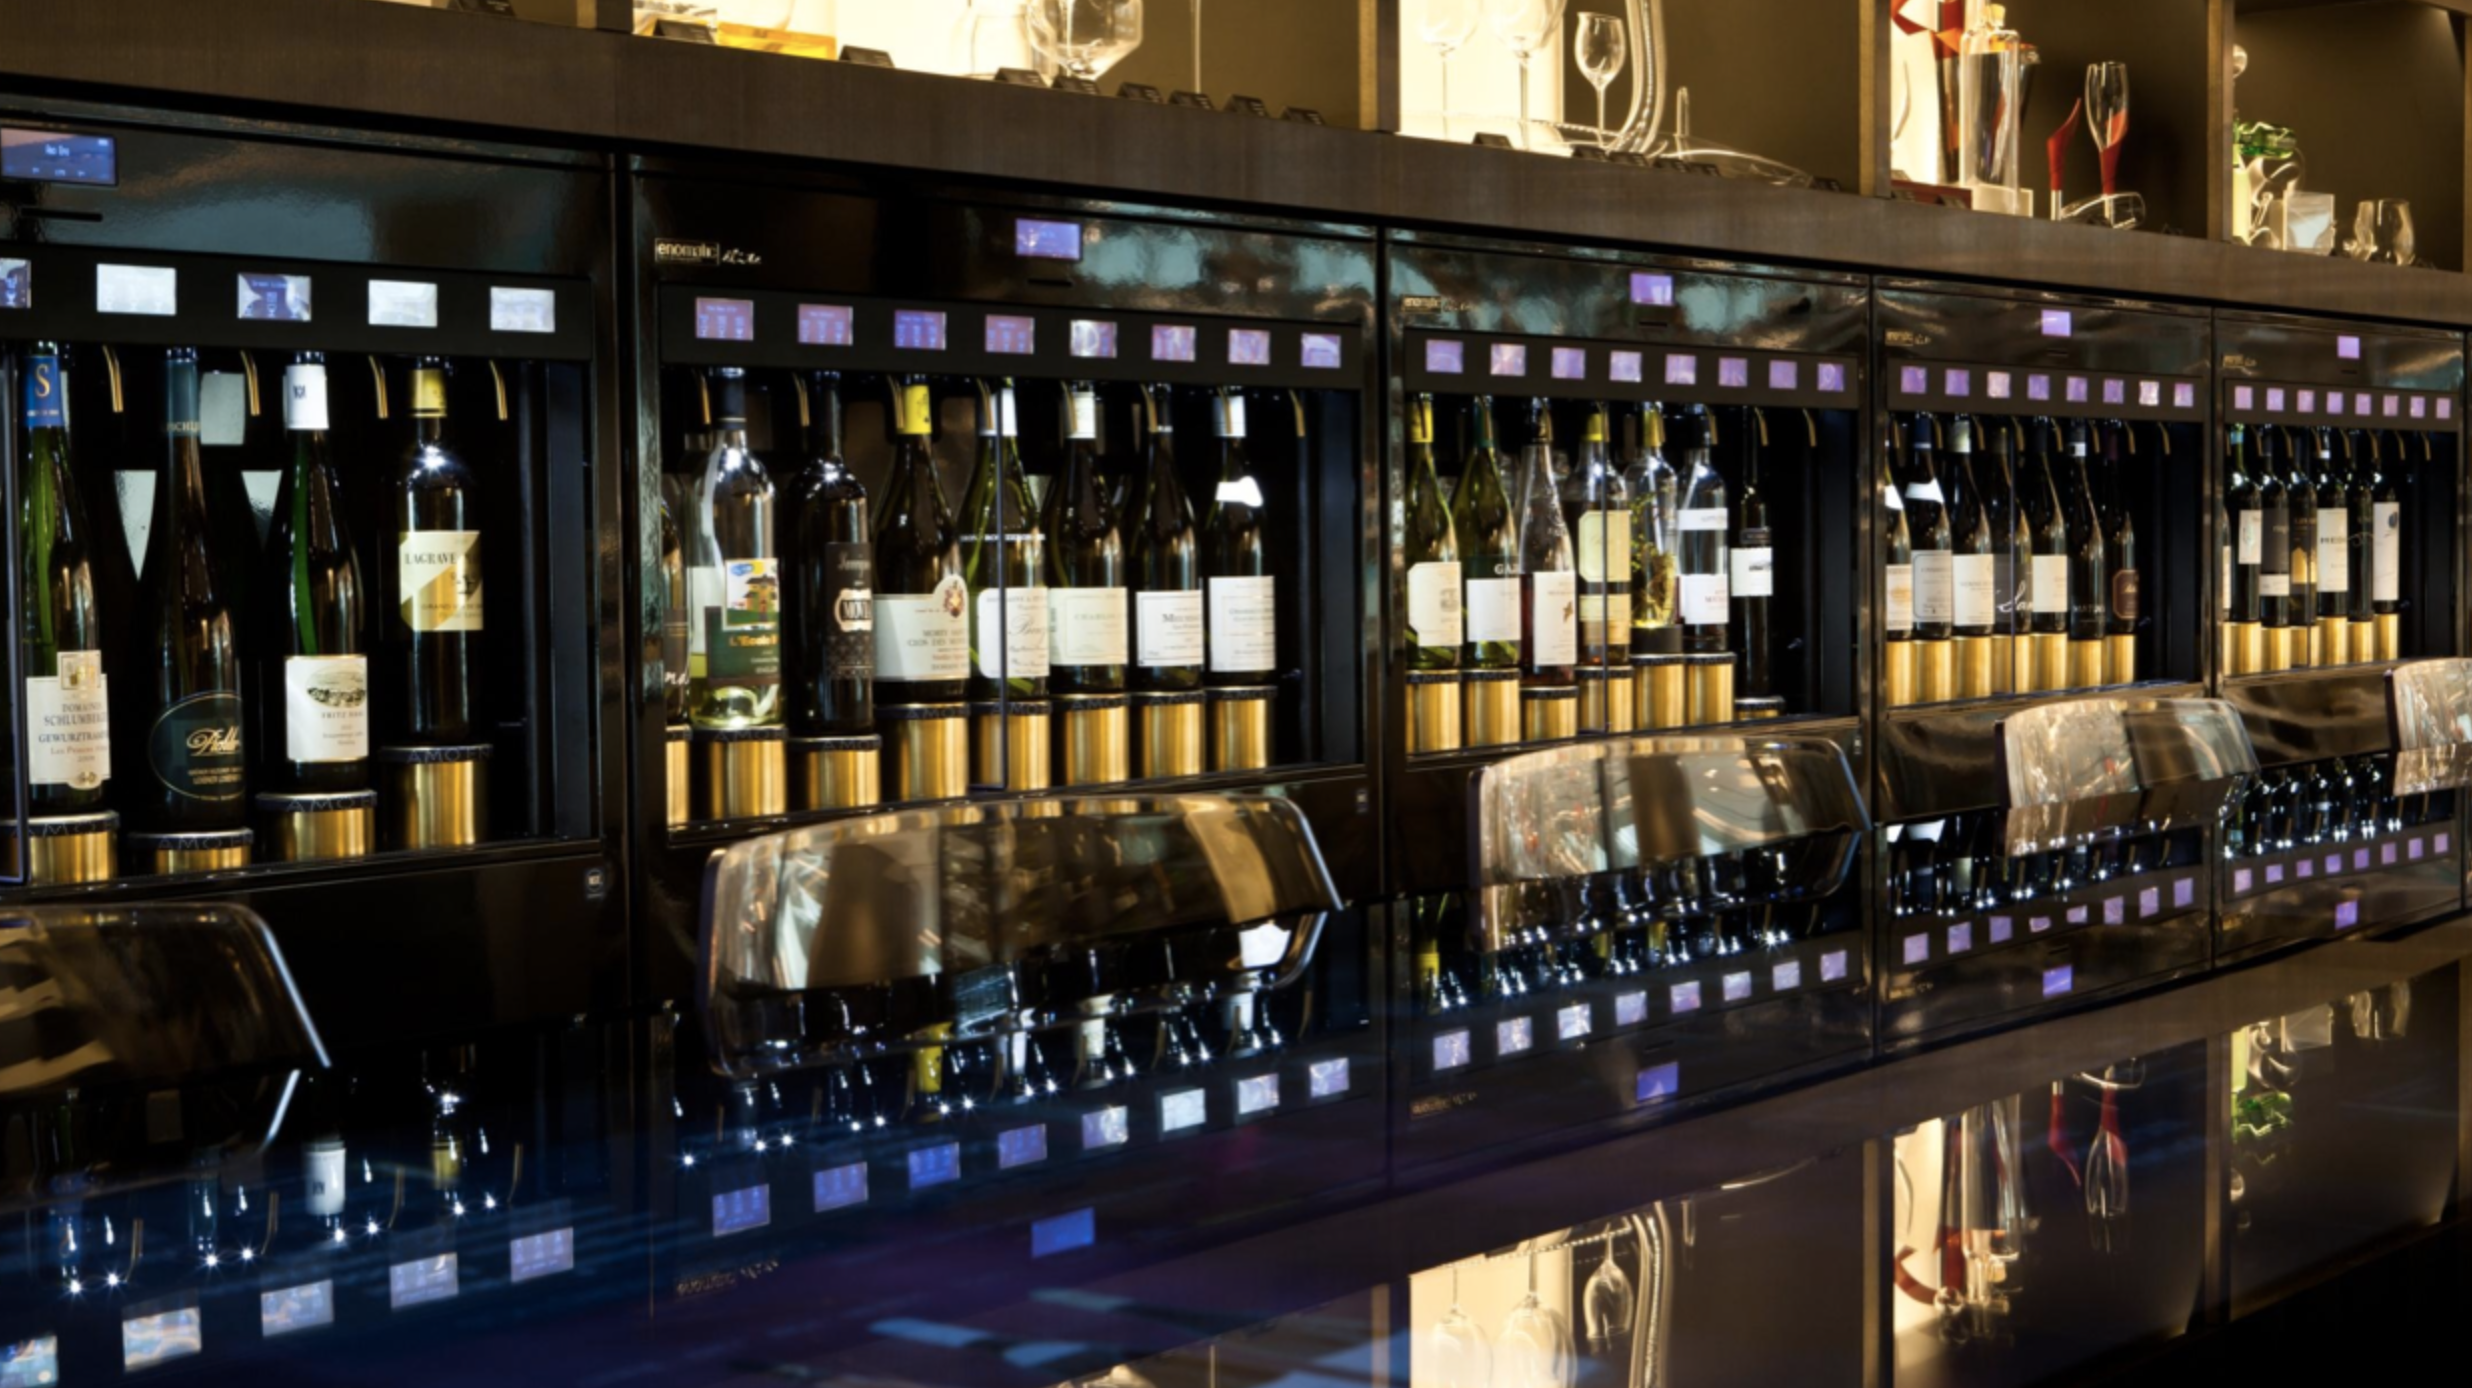 enoline elite wine dispenser systems